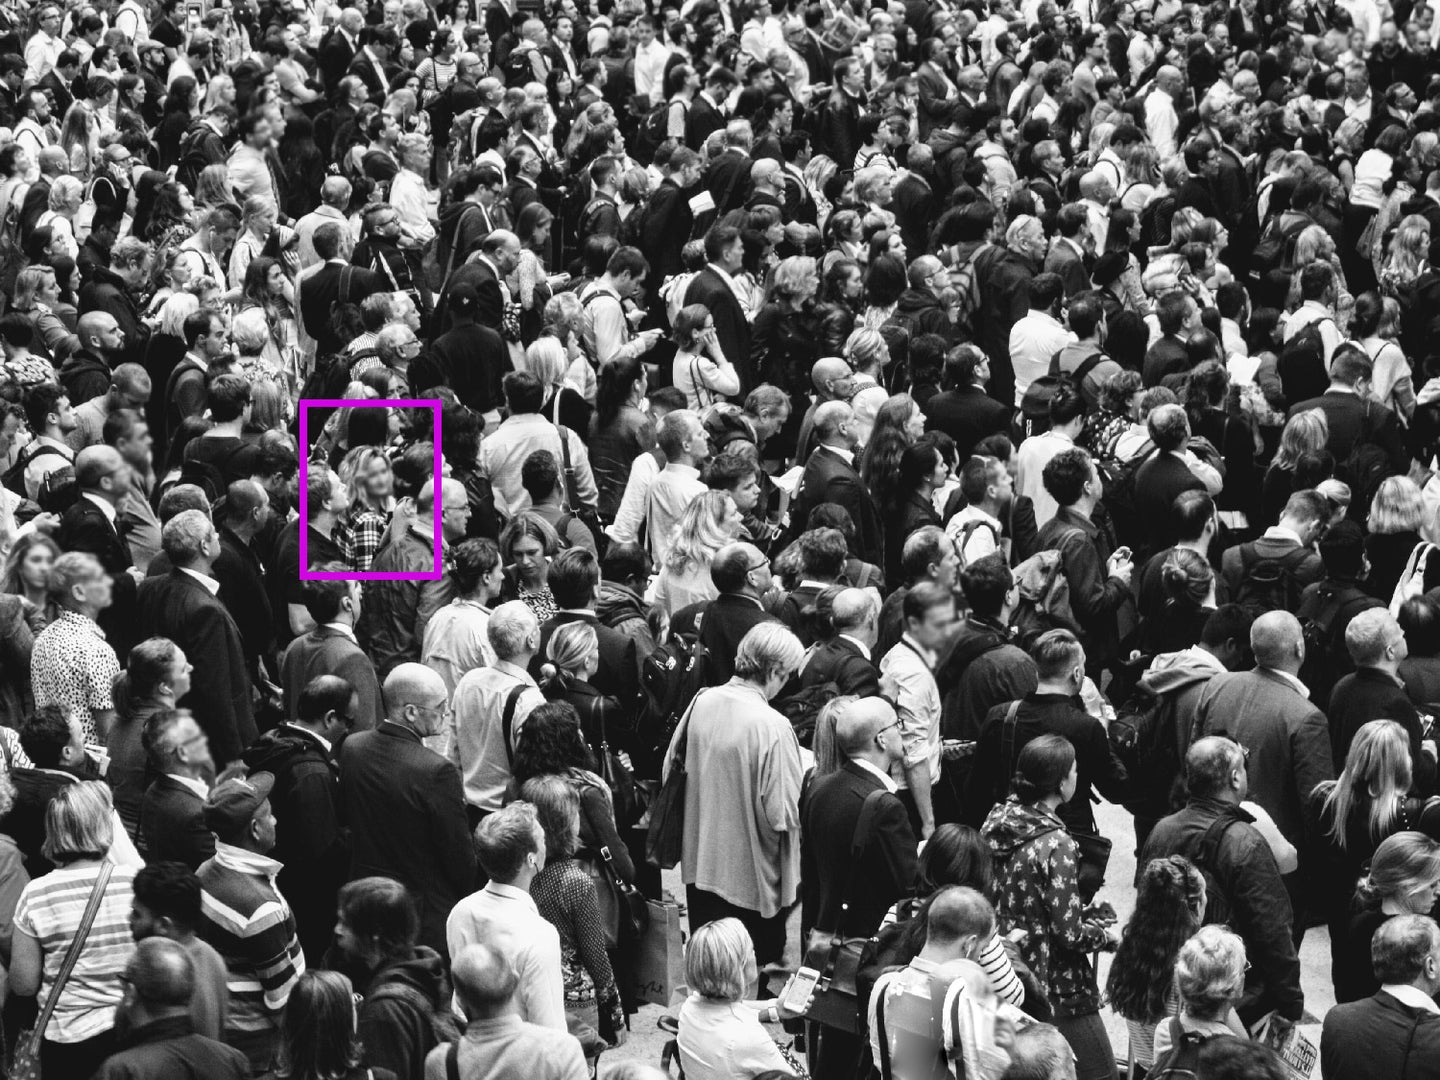 Stock image of a crowd from an unspecified event.